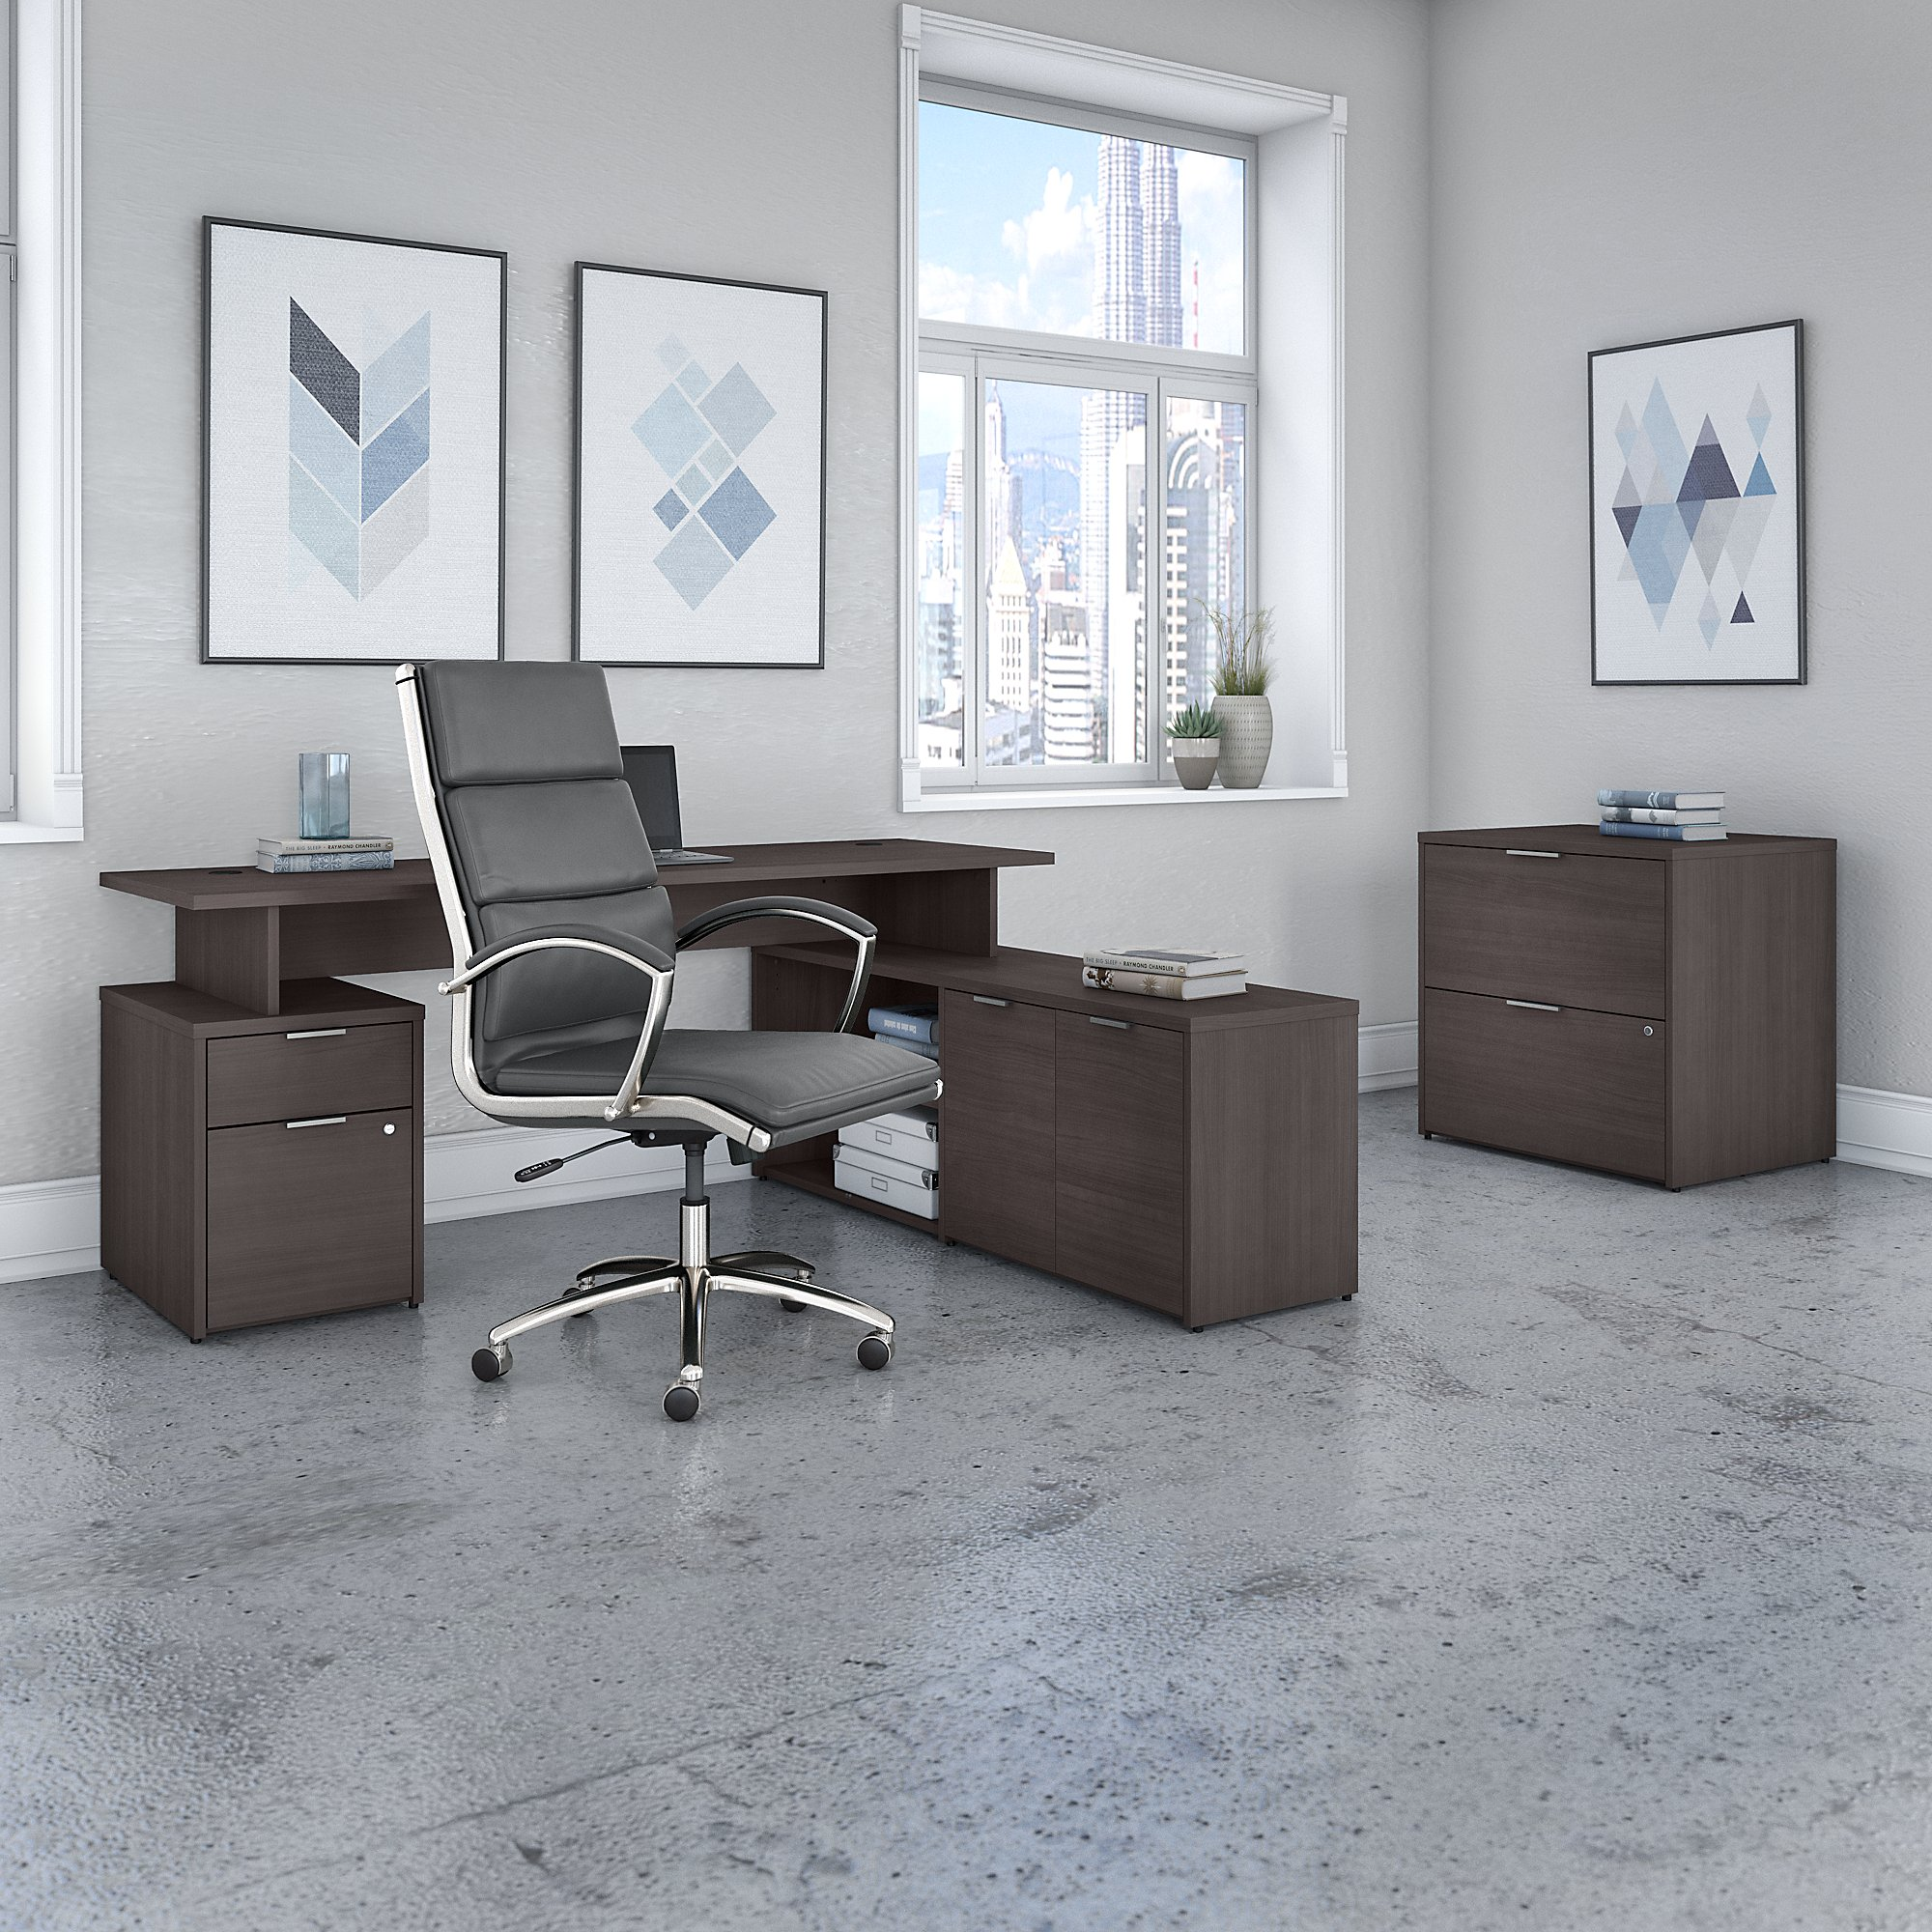 bush business furniture storm gray jamestown furniture set with matching office chair